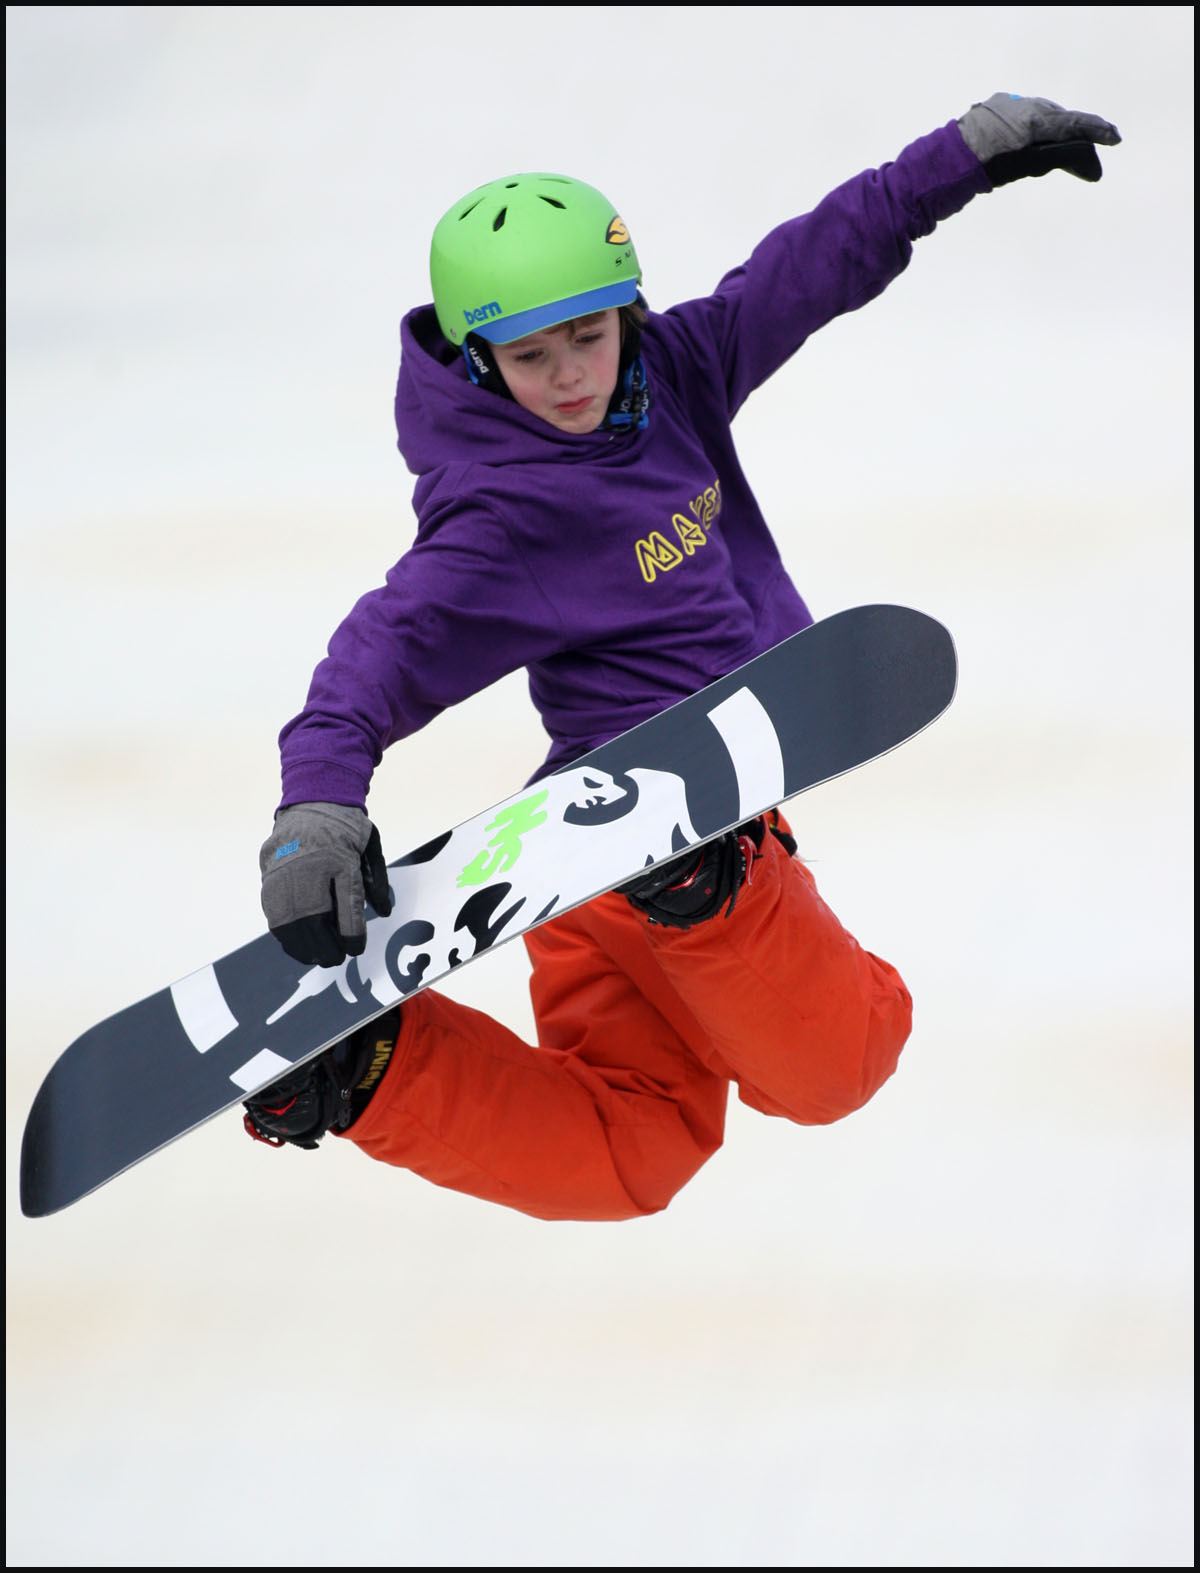 Young Southampton snowboarder continues incredible season